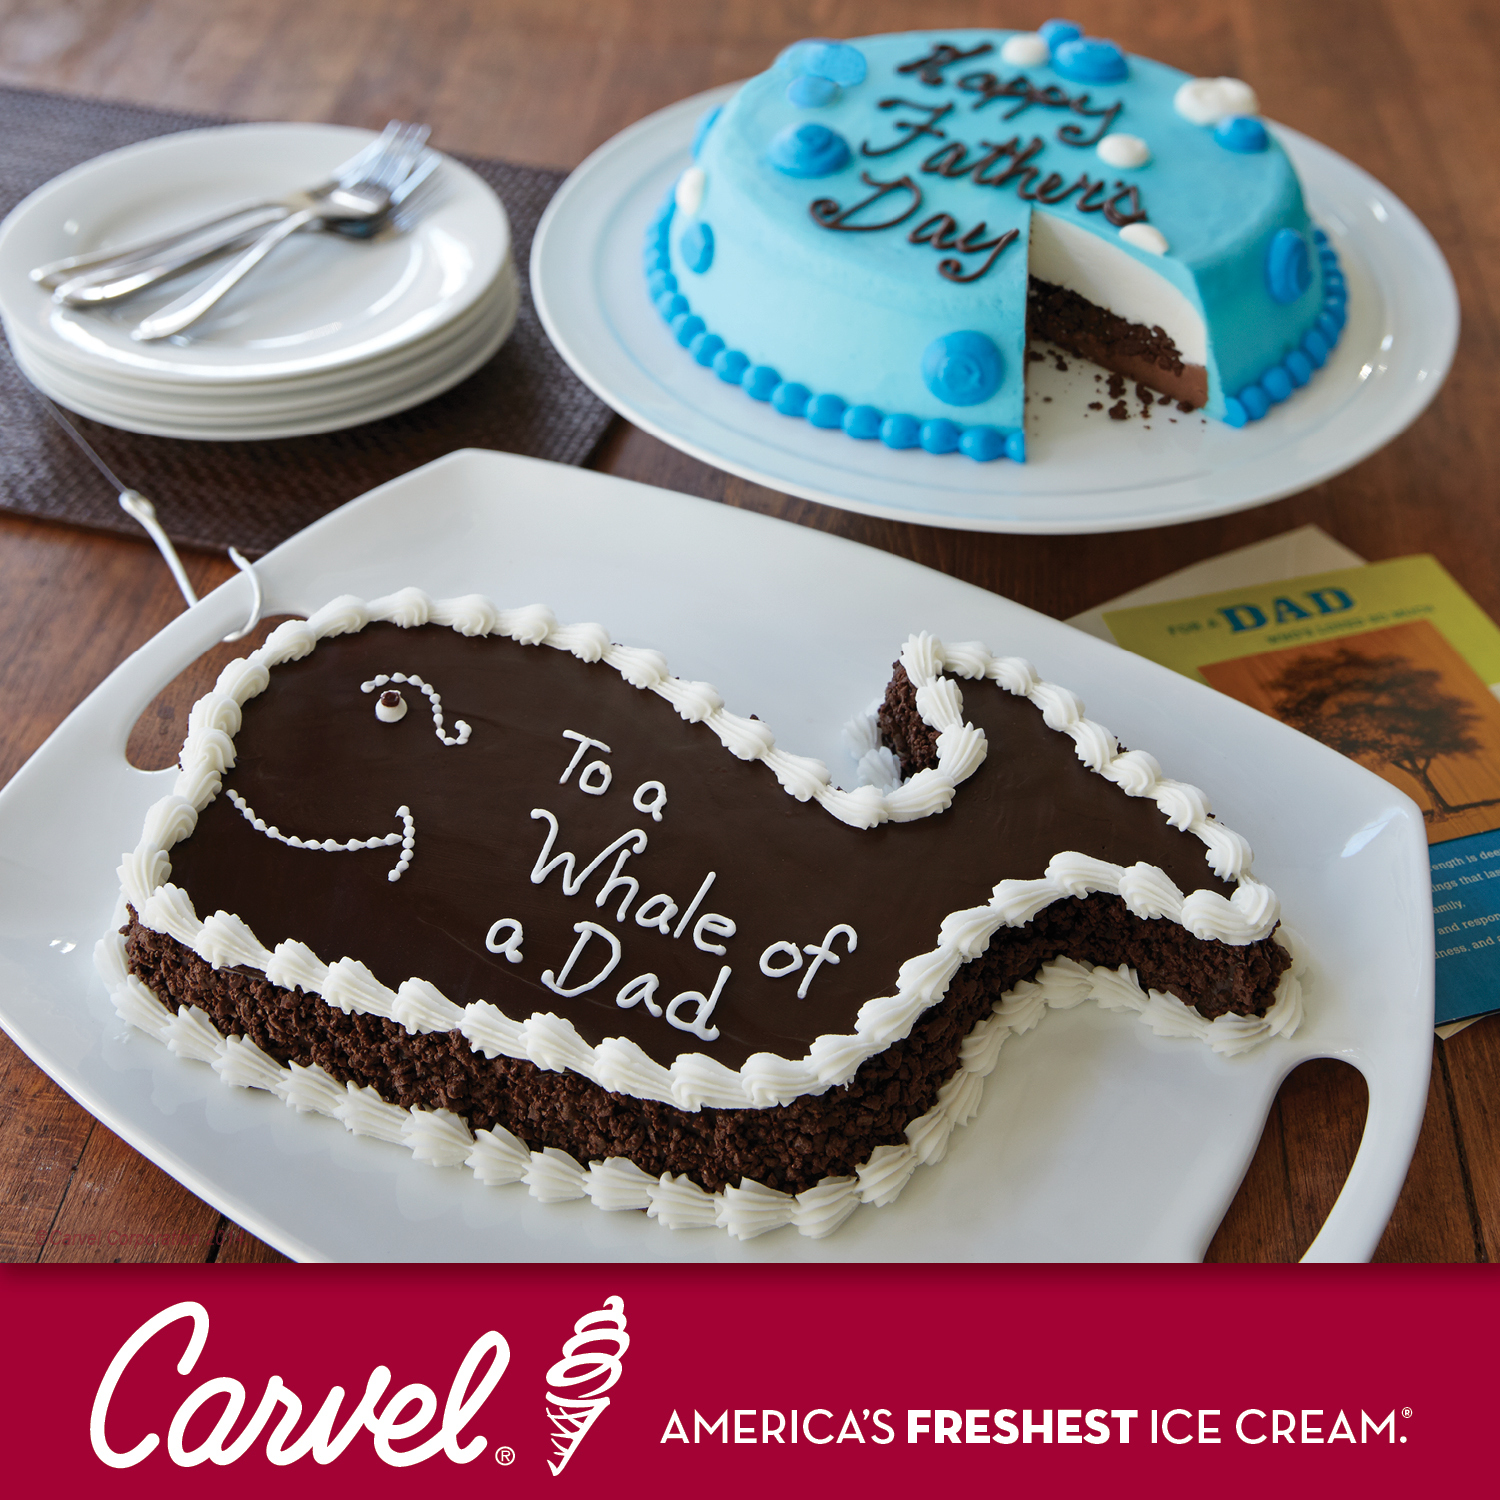 Carvel Celebrates Dads With Iconic Fudgie The Whale Ice